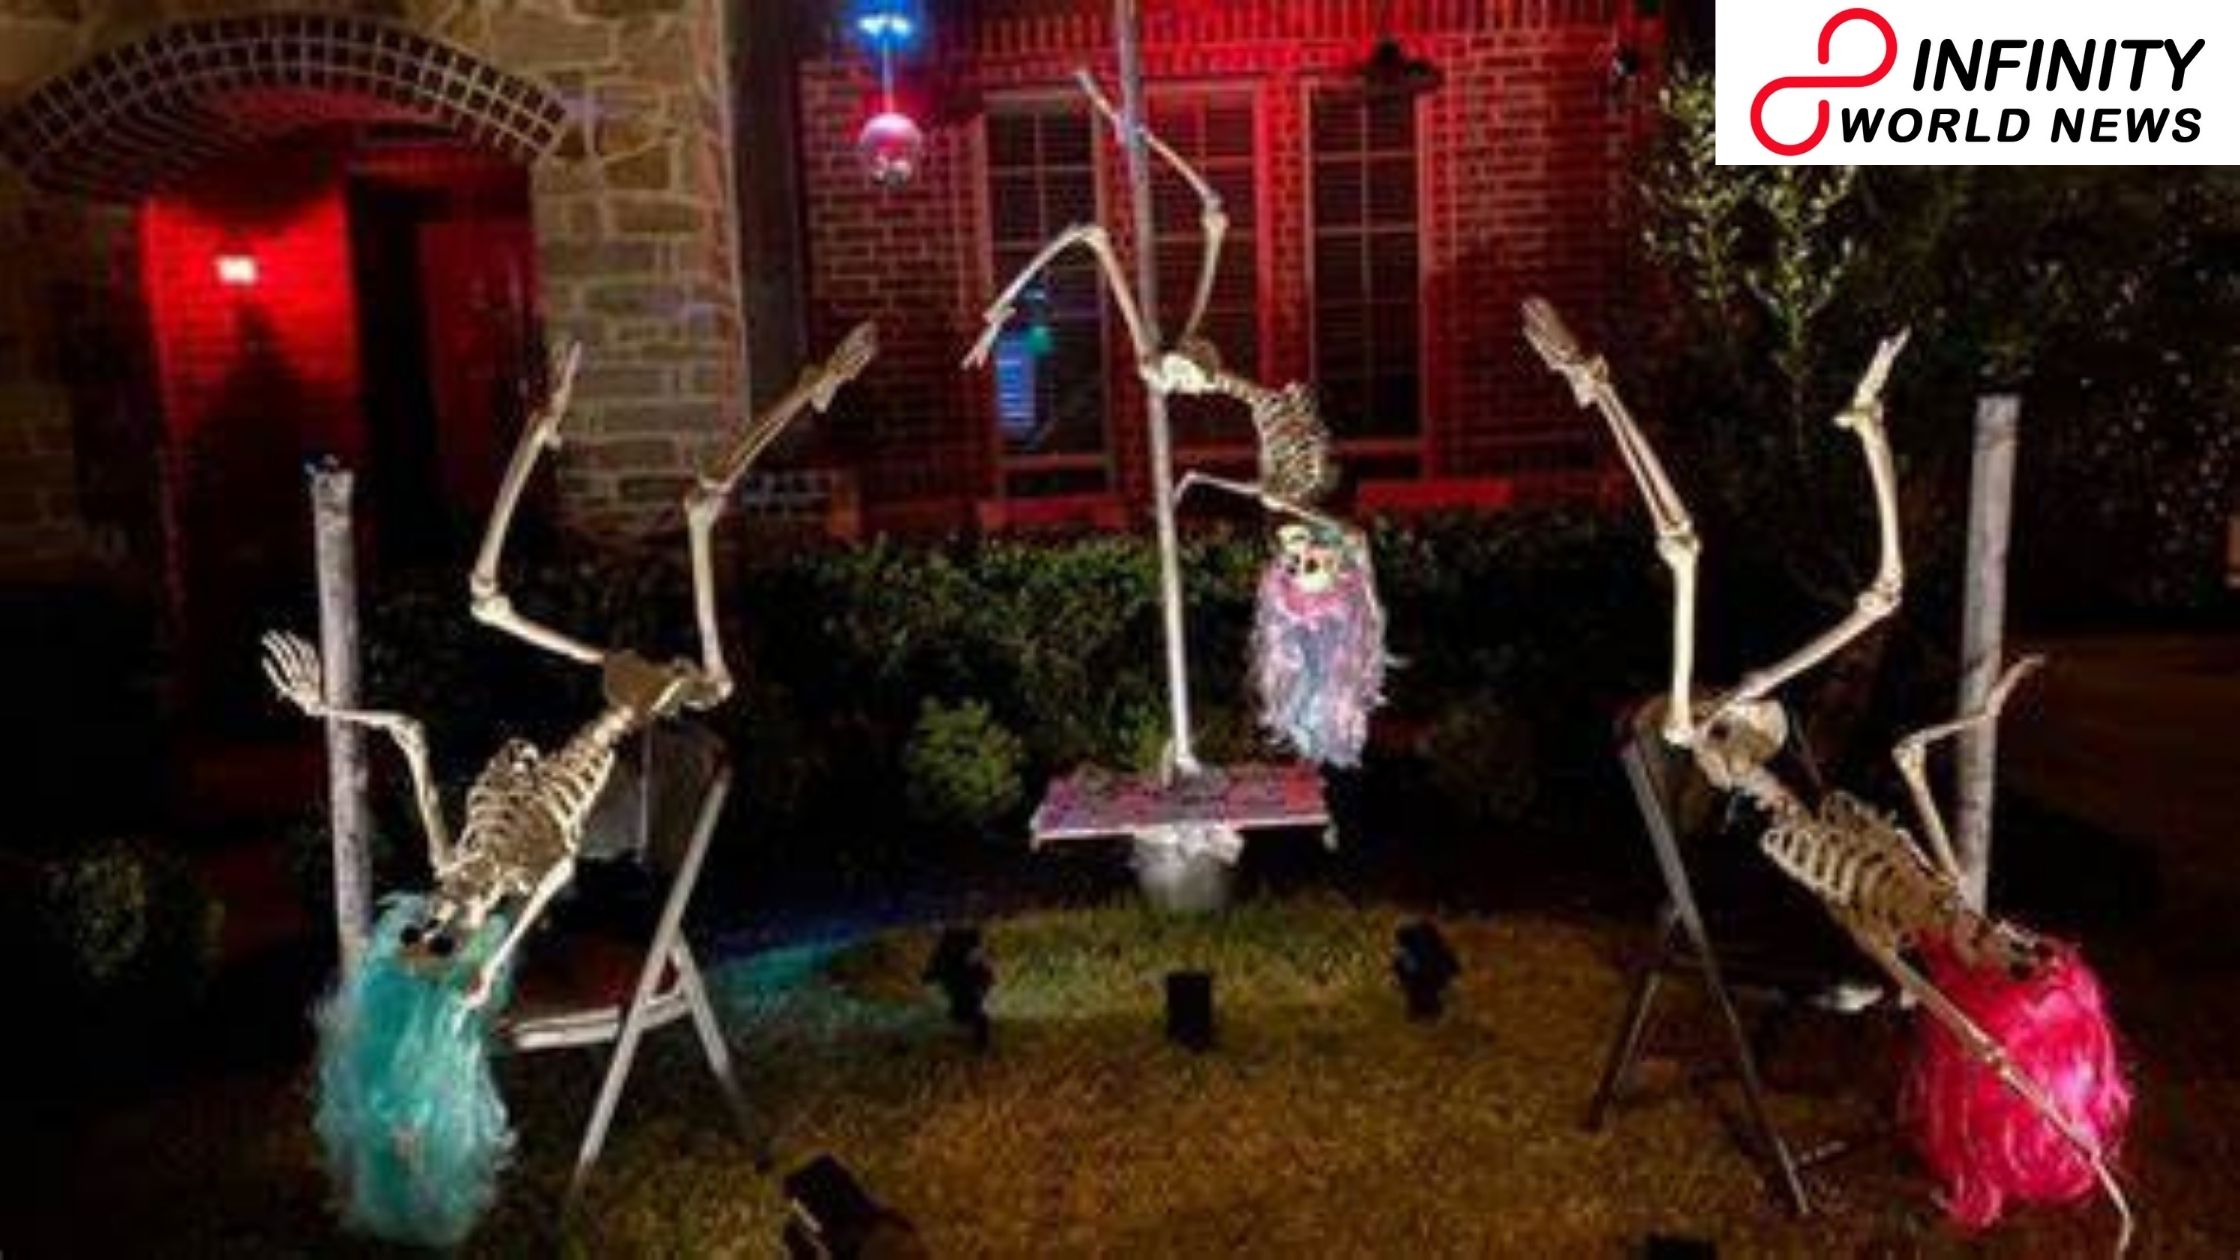 Lady Opens Halloween Strip Club with Skeletons Pole